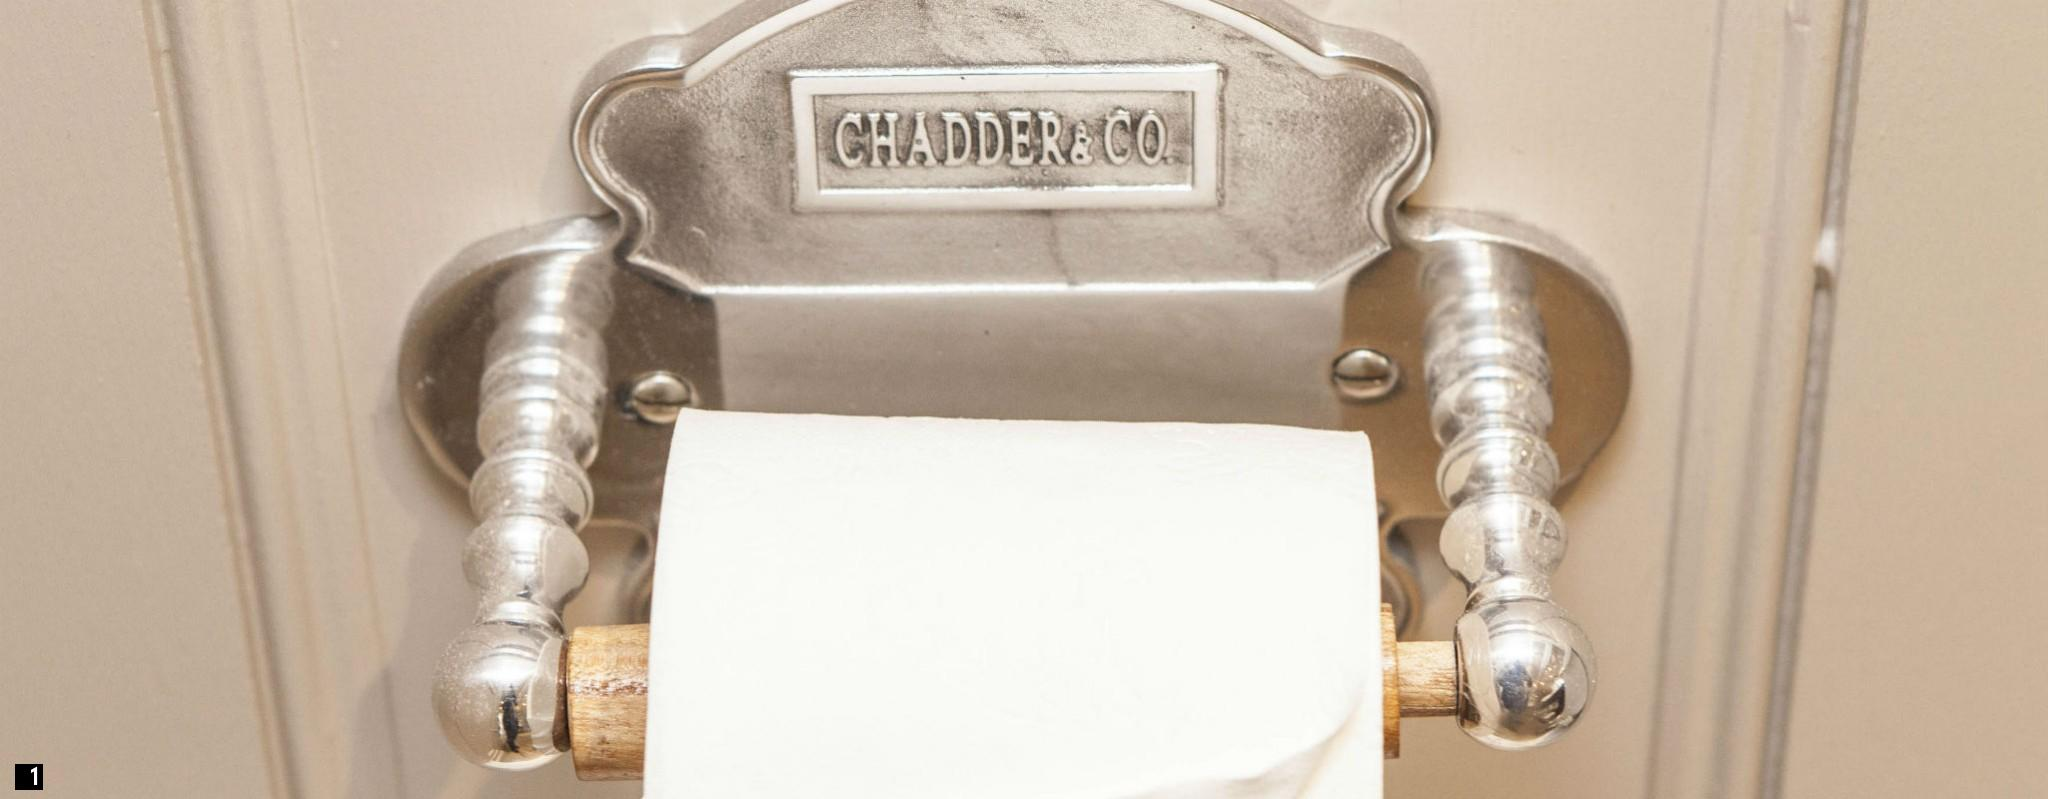 Chadder Vintage Style Toilet Roll Holder , Victorian Trraditional Toilet Roll Holder